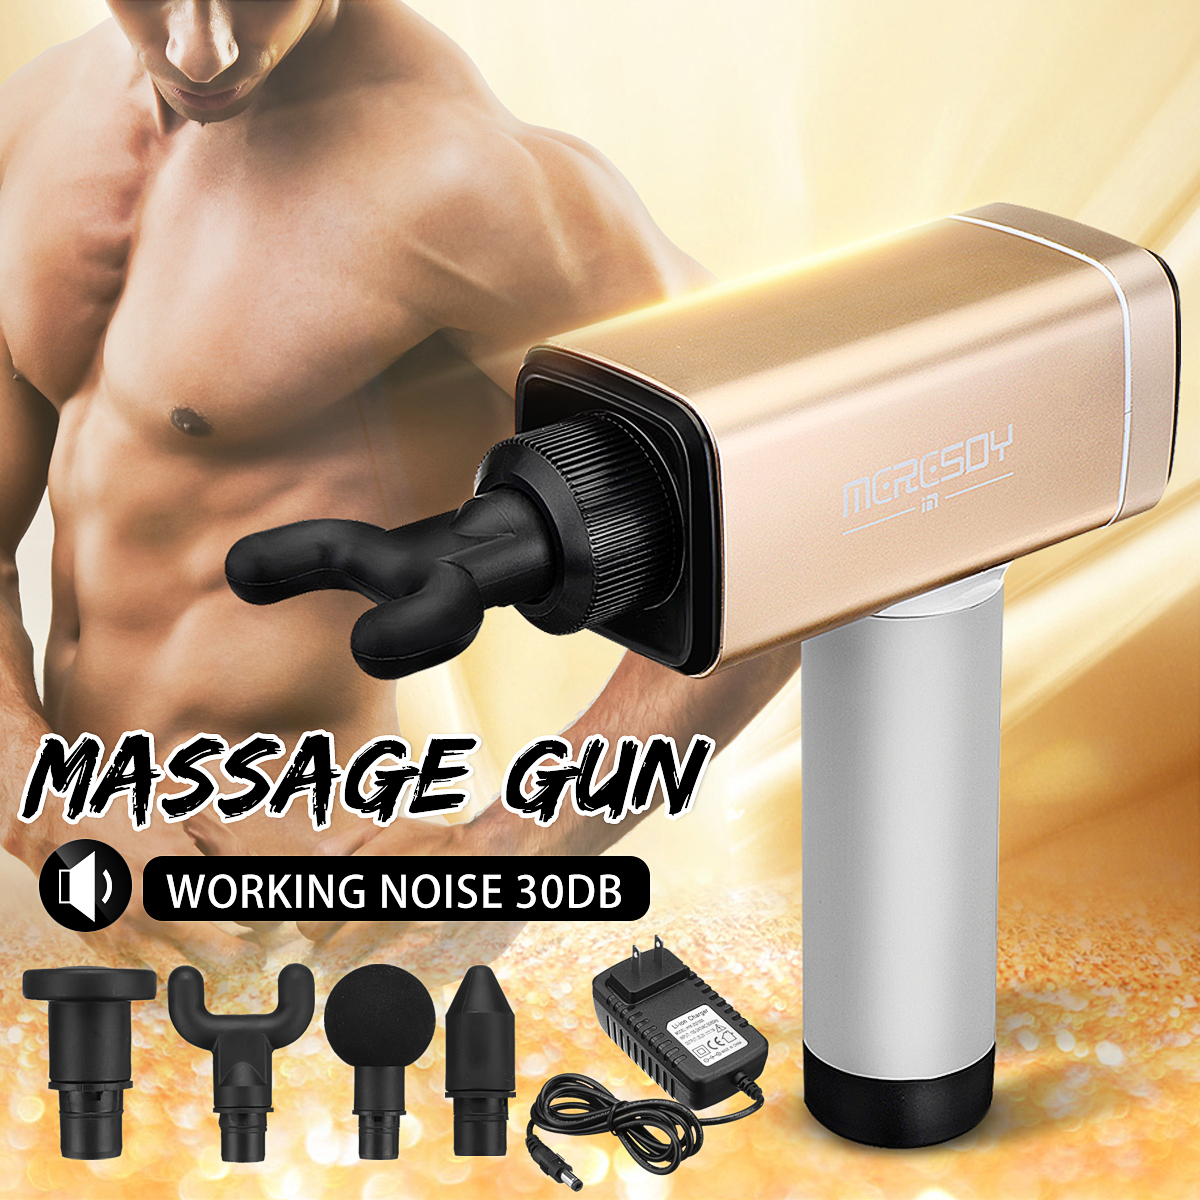 Relaxed body Massager 24V Lithium Cordless Commercial Use Massage for Gun Vibrating Massage Machine Muscle RelaxationRelaxed body Massager 24V Lithium Cordless Commercial Use Massage for Gun Vibrating Massage Machine Muscle Relaxation